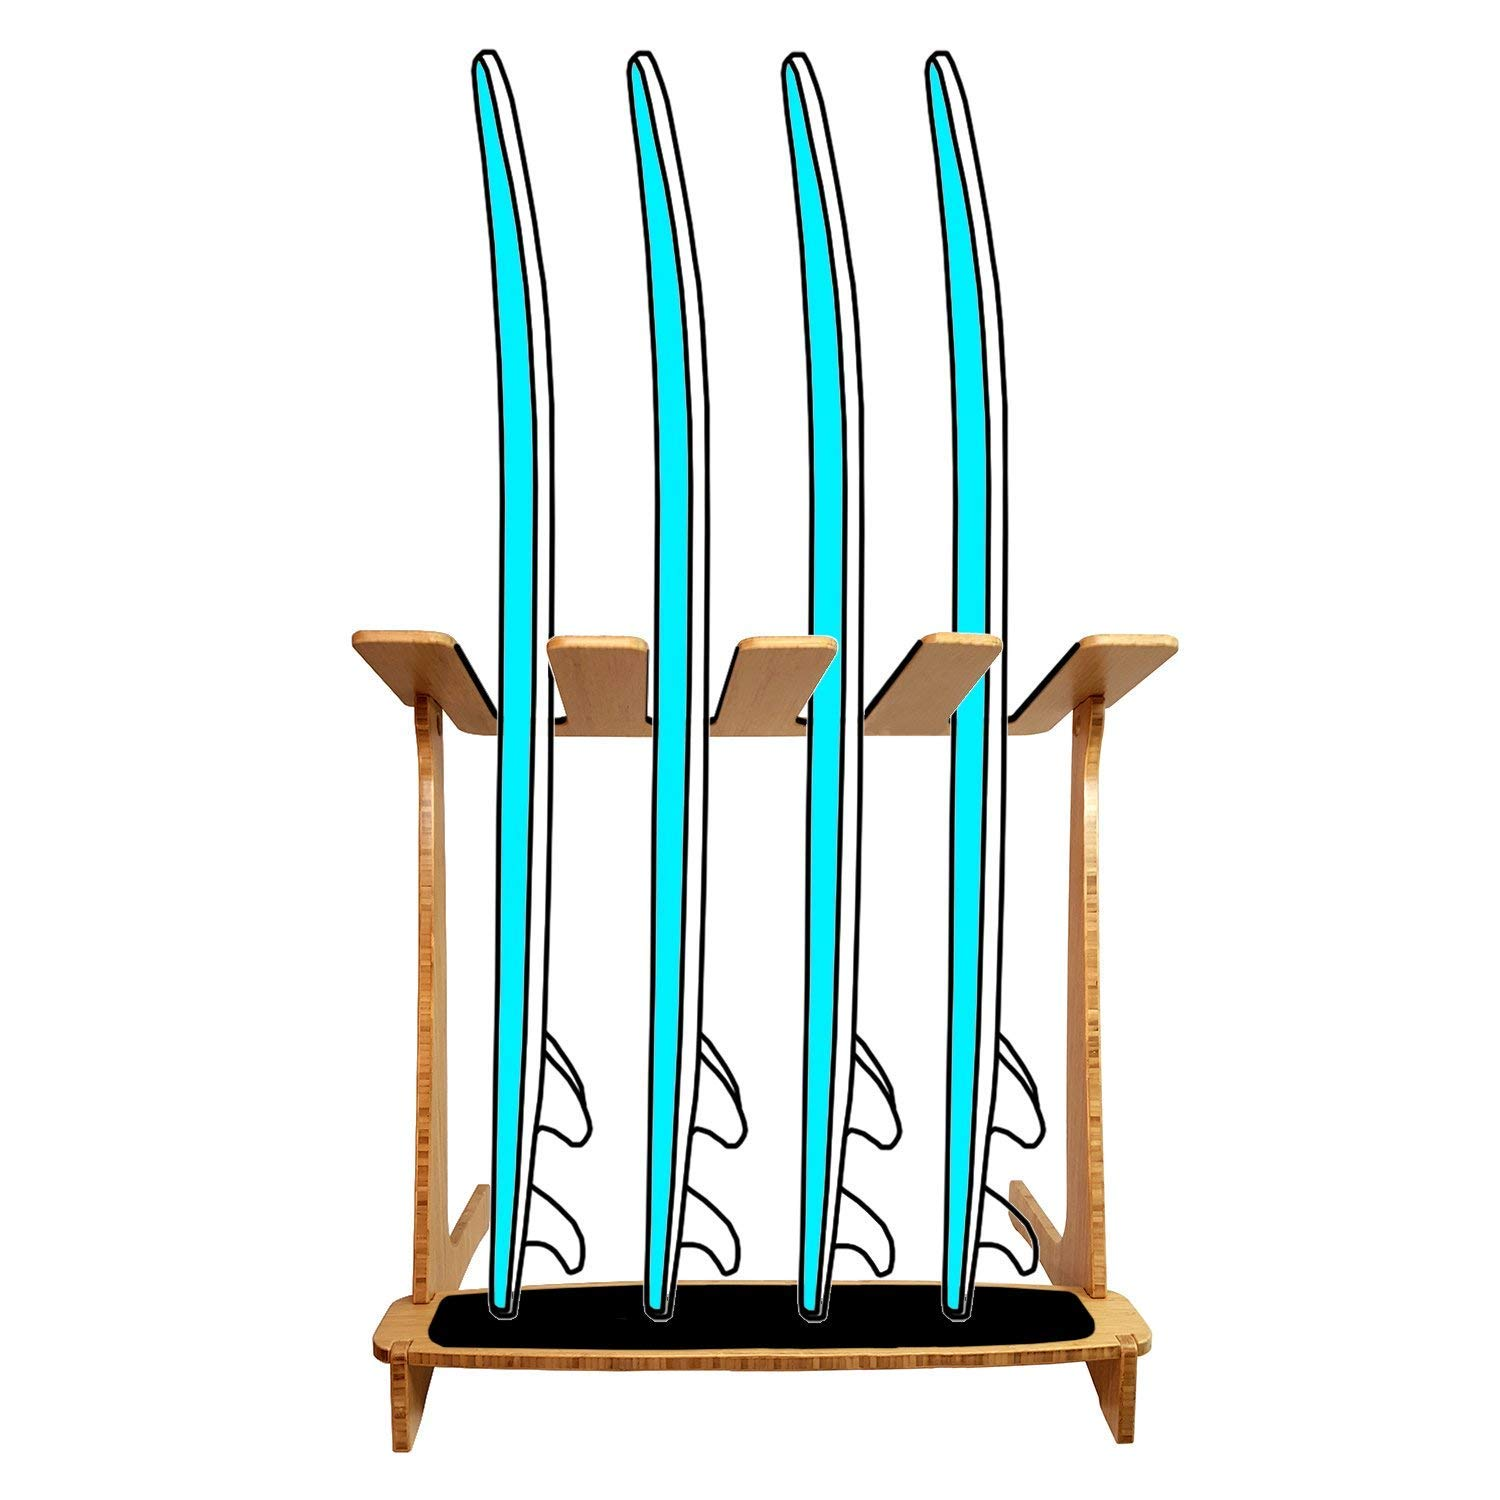 Grassracks Bamboo Freestanding Vertical Surf Rack for 4 Boards - Surfboards - Snowboards - Wakeboards by Grassracks